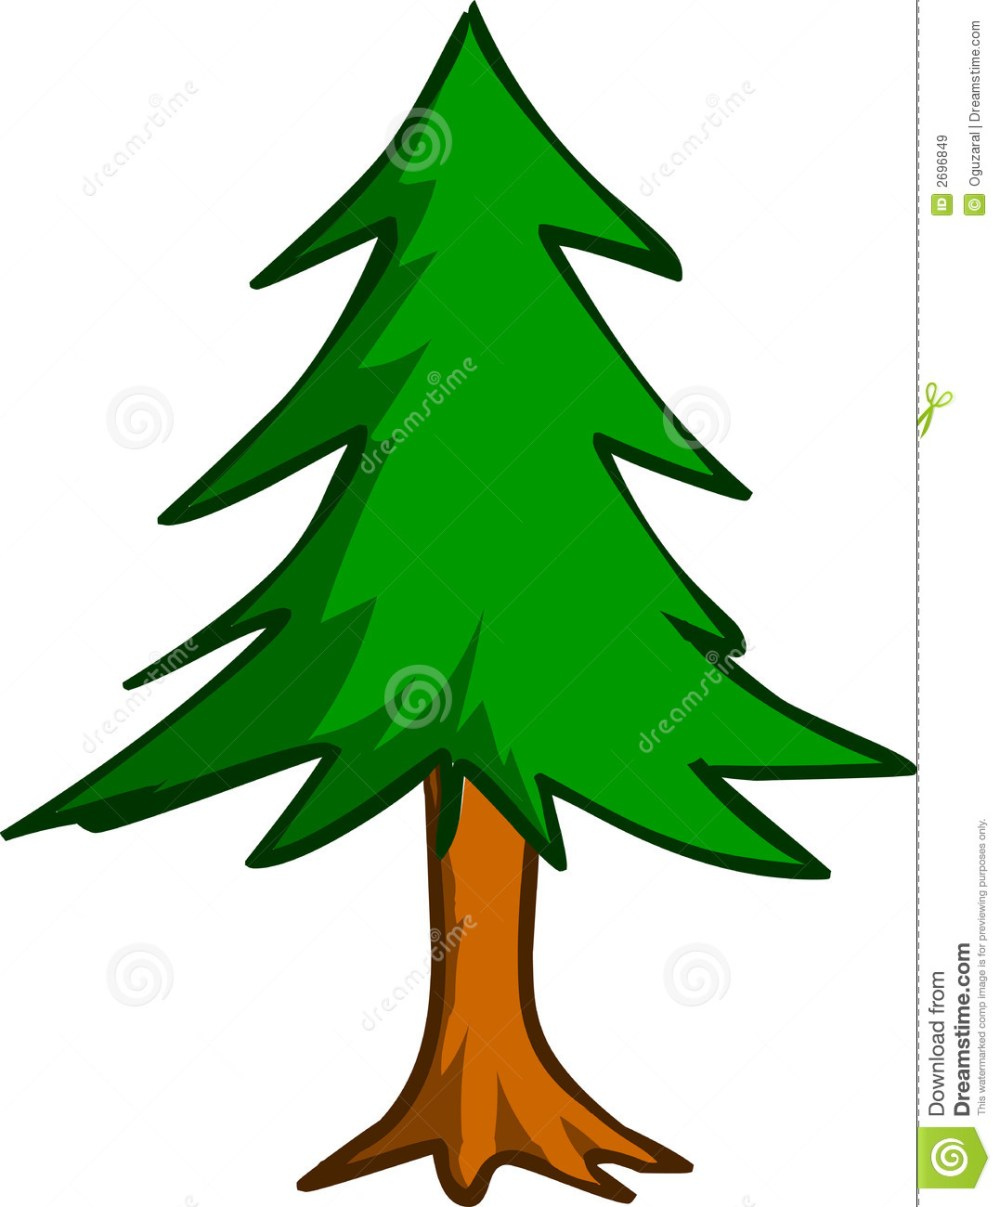 medium resolution of 1077x1300 simple pine tree drawing clipart pine tree